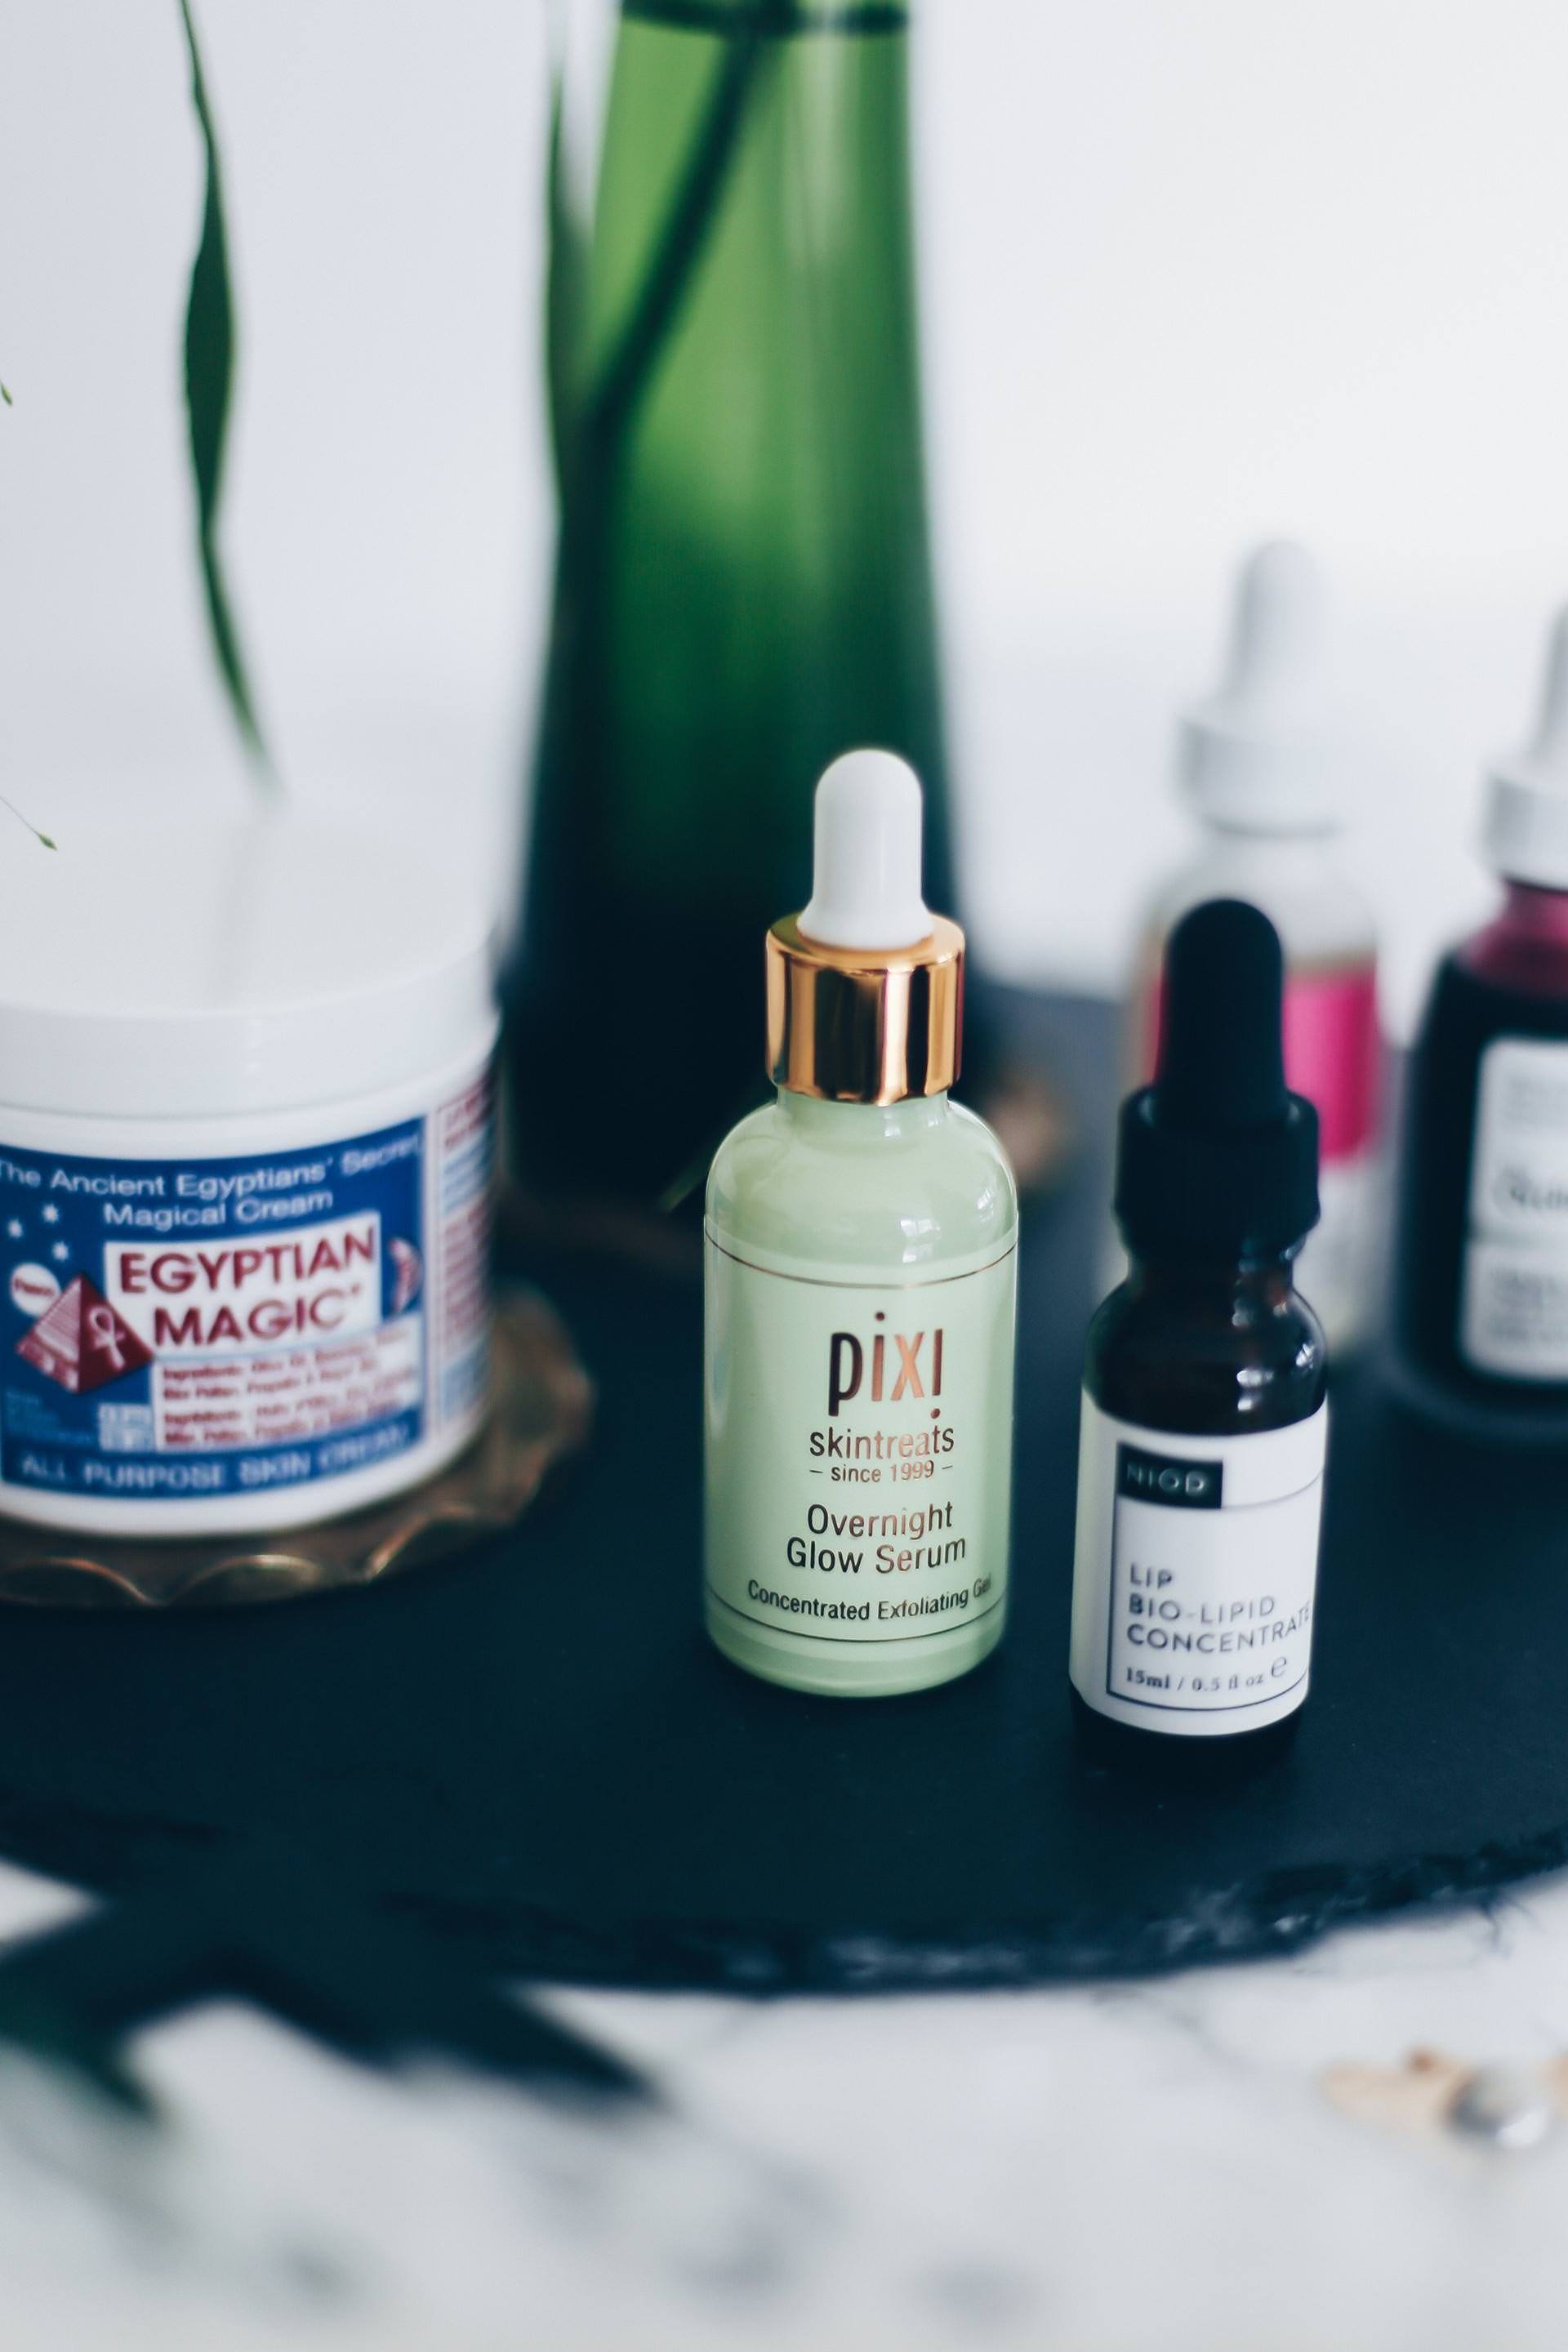 Beauty Favoriten, Must-haves, Pixi Overnight Glow Serum, Hylamide Low-Molecular HA Booster Serum, Vitamin C Booster, The Ordinary AHA BHA Peeling-Lösung, Egyptian Magic Creme, NIOD Lippenkonzentrat, Beauty Blog, Beauty Favoriten, www.whoismocca.com